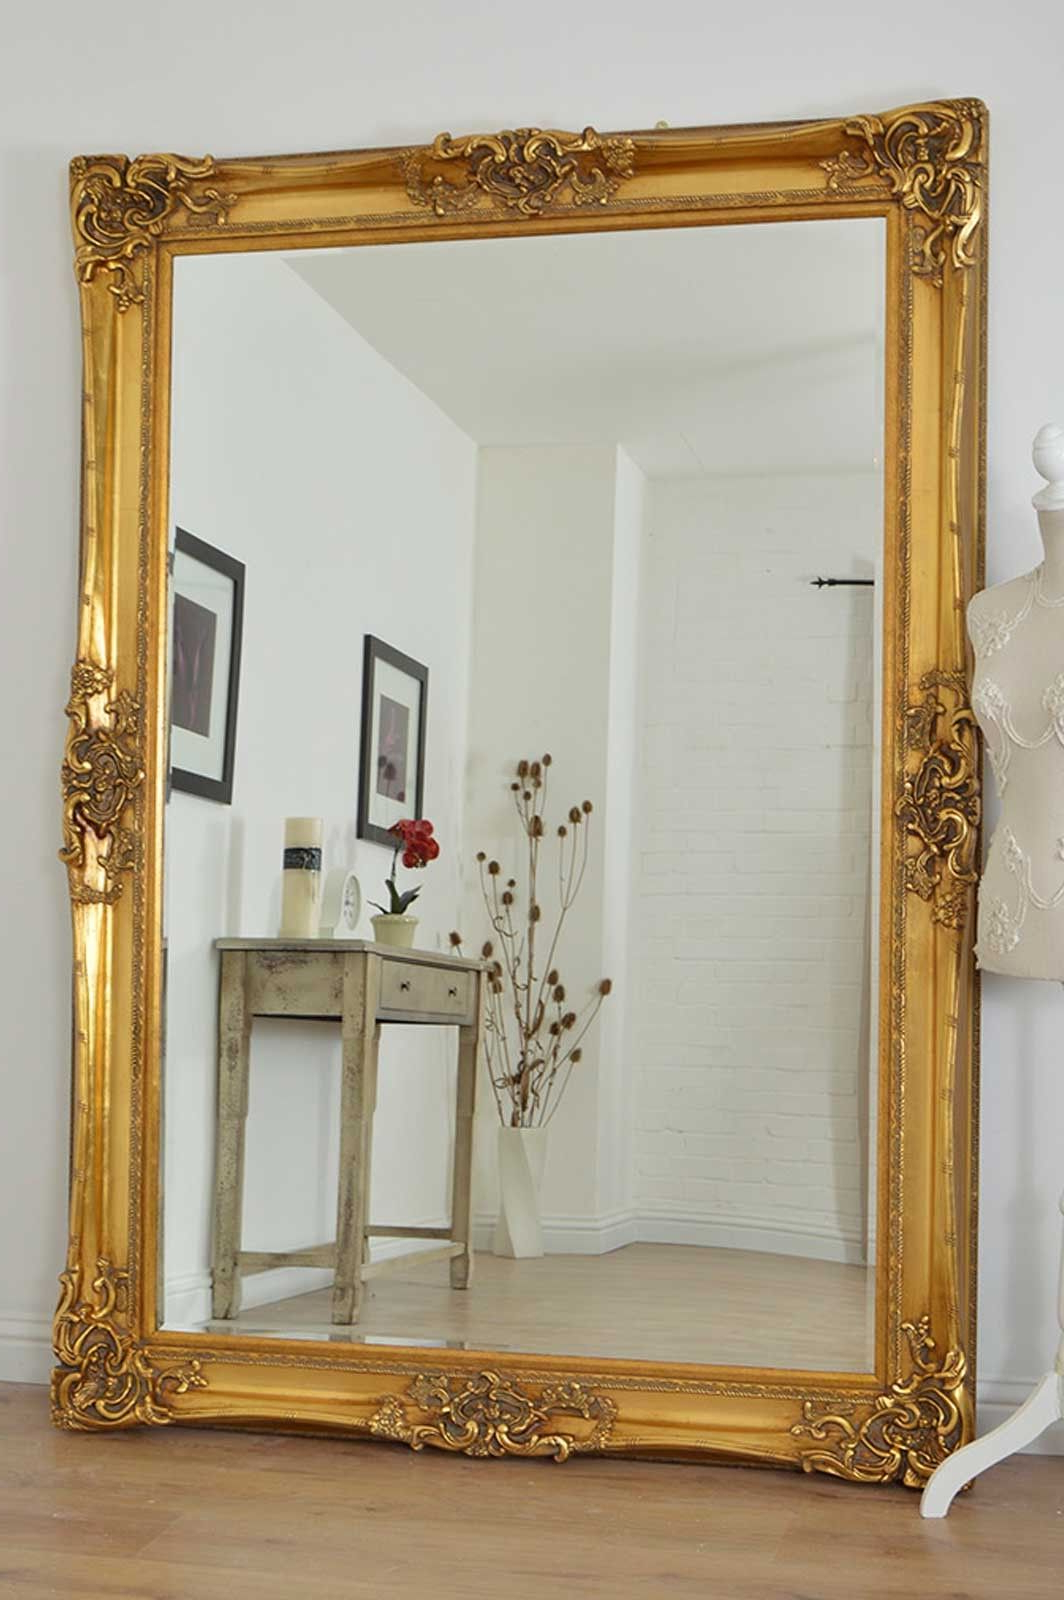 Well Known Large Gold Very Ornate Antique Design Wall Mirror 7ft X 5ft (213cm X Throughout Very Large Wall Mirrors (View 2 of 20)